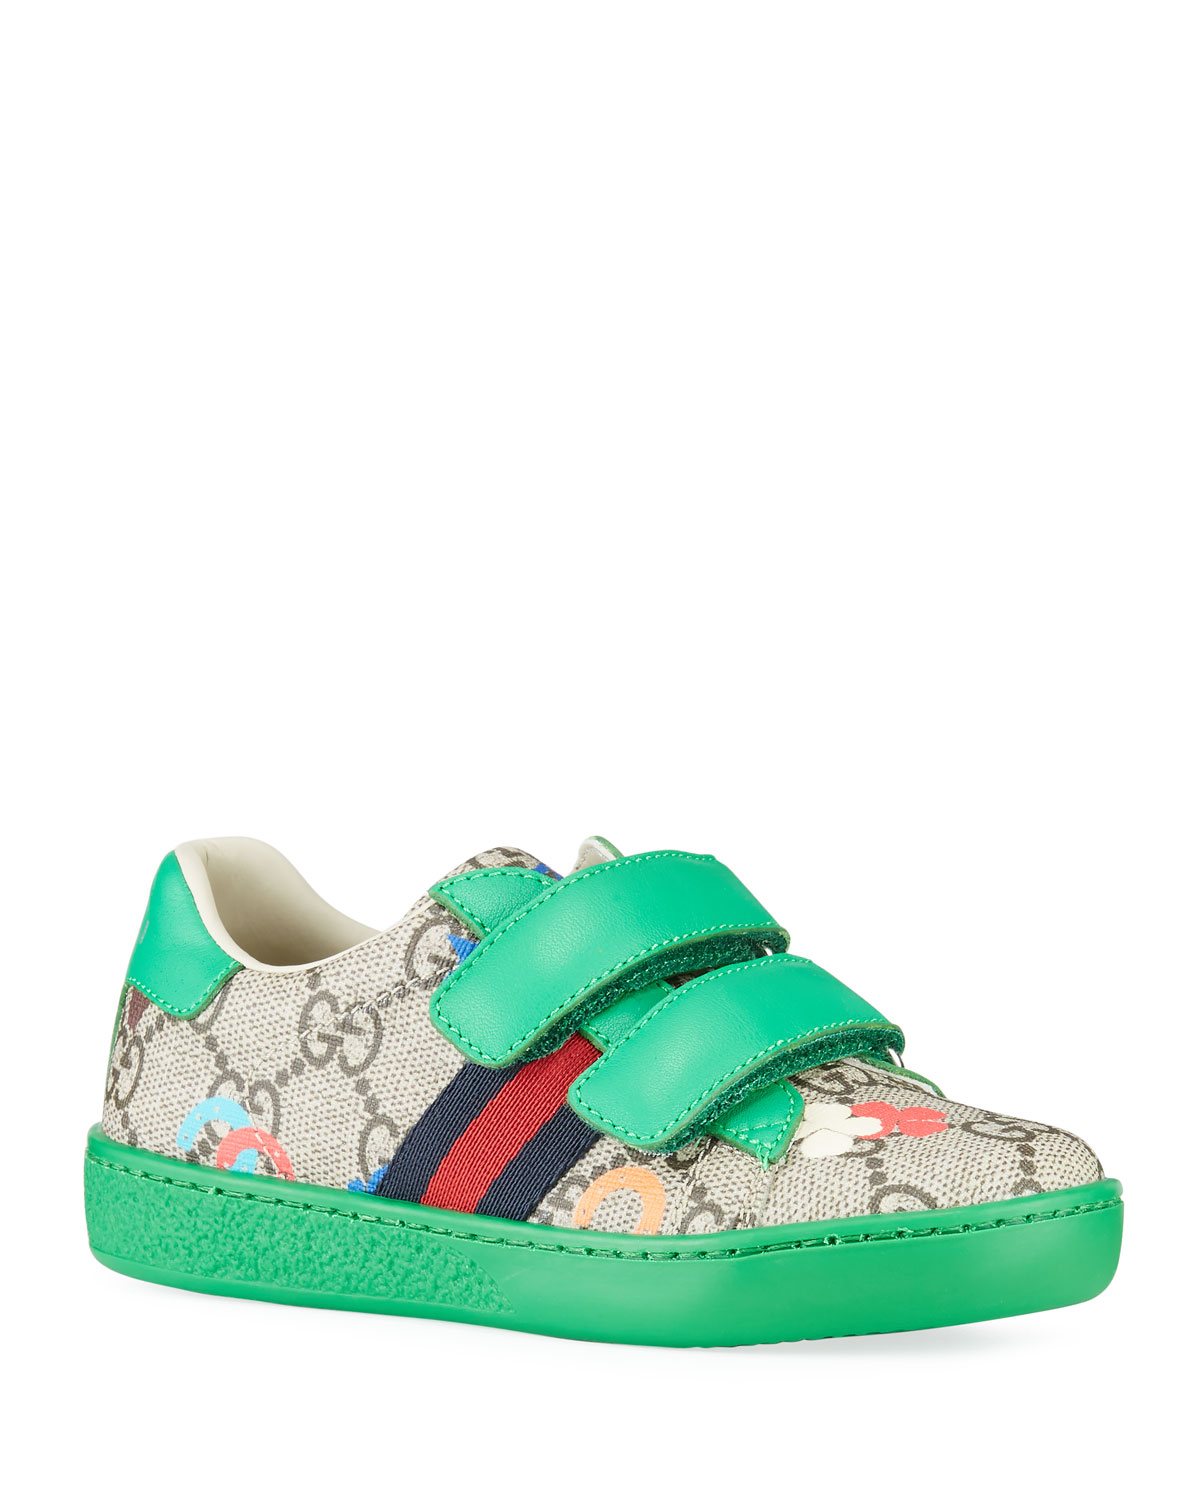 Gucci Sneakers ACE GG RANCH SNEAKERS, BABY/TODDLER